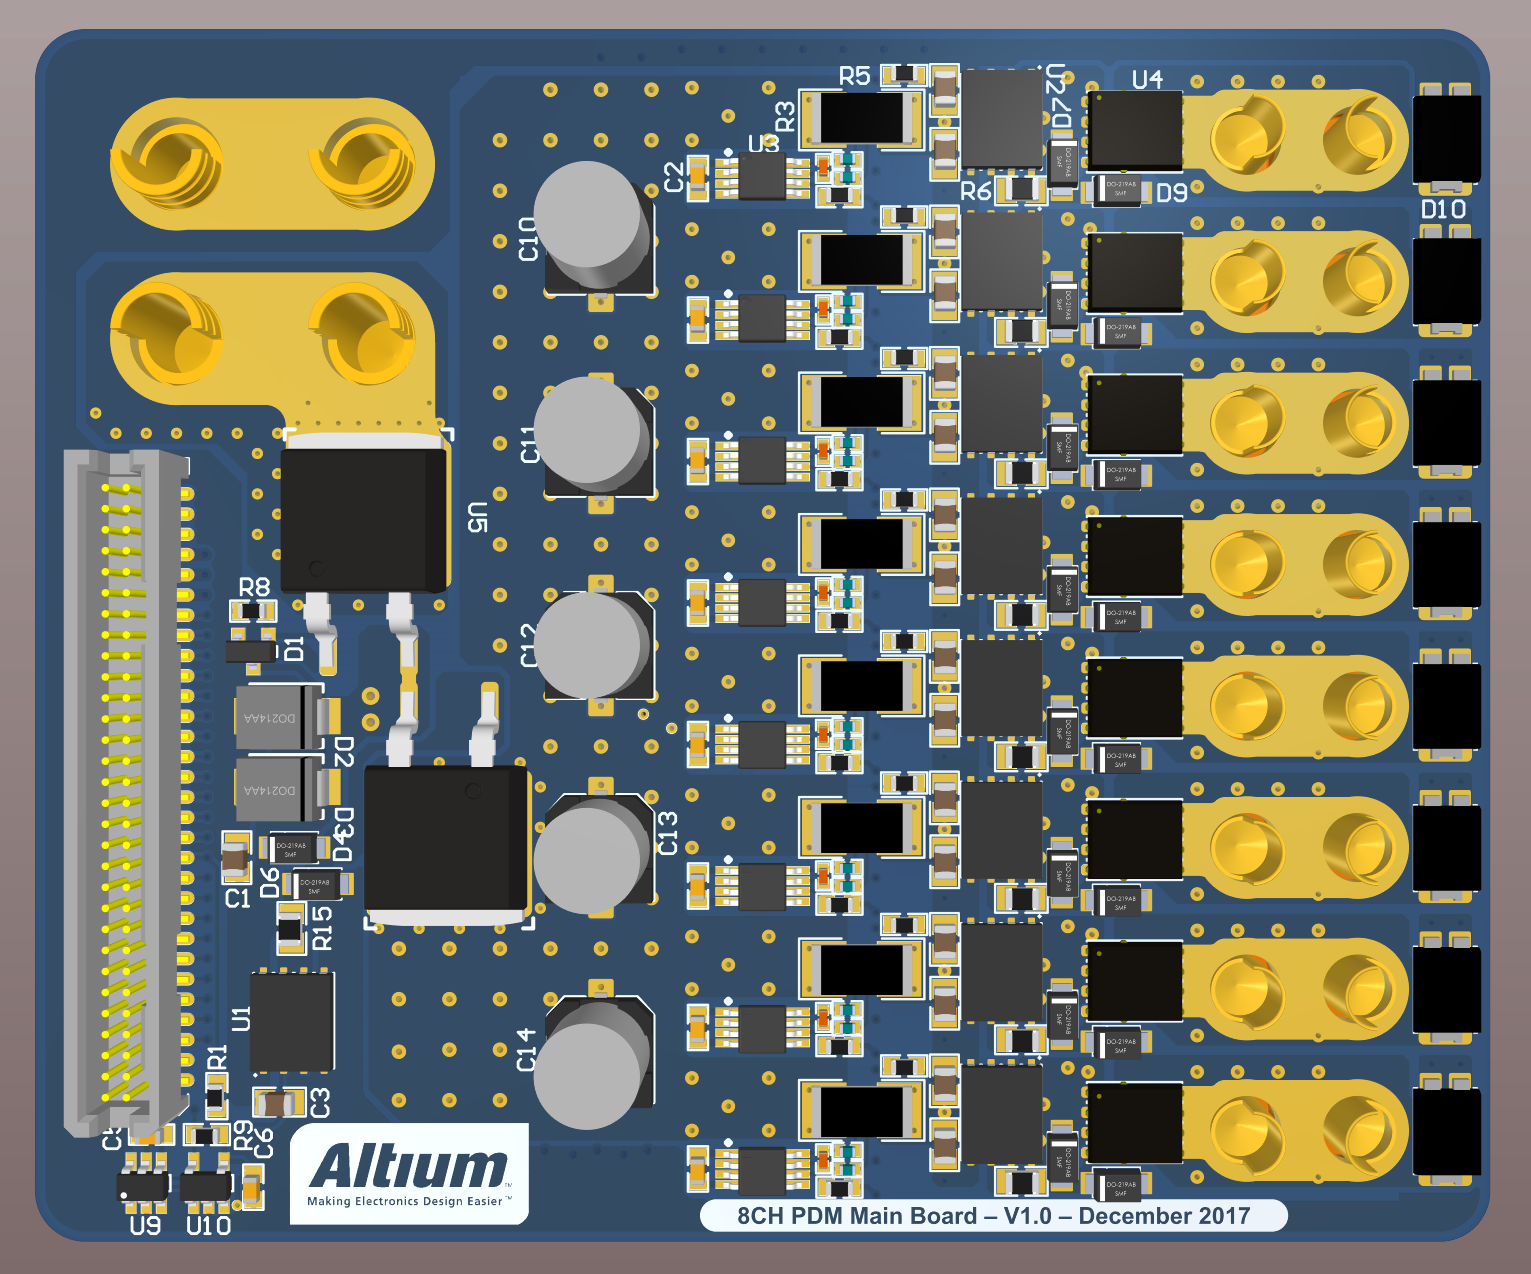 3D Board Design in Altium